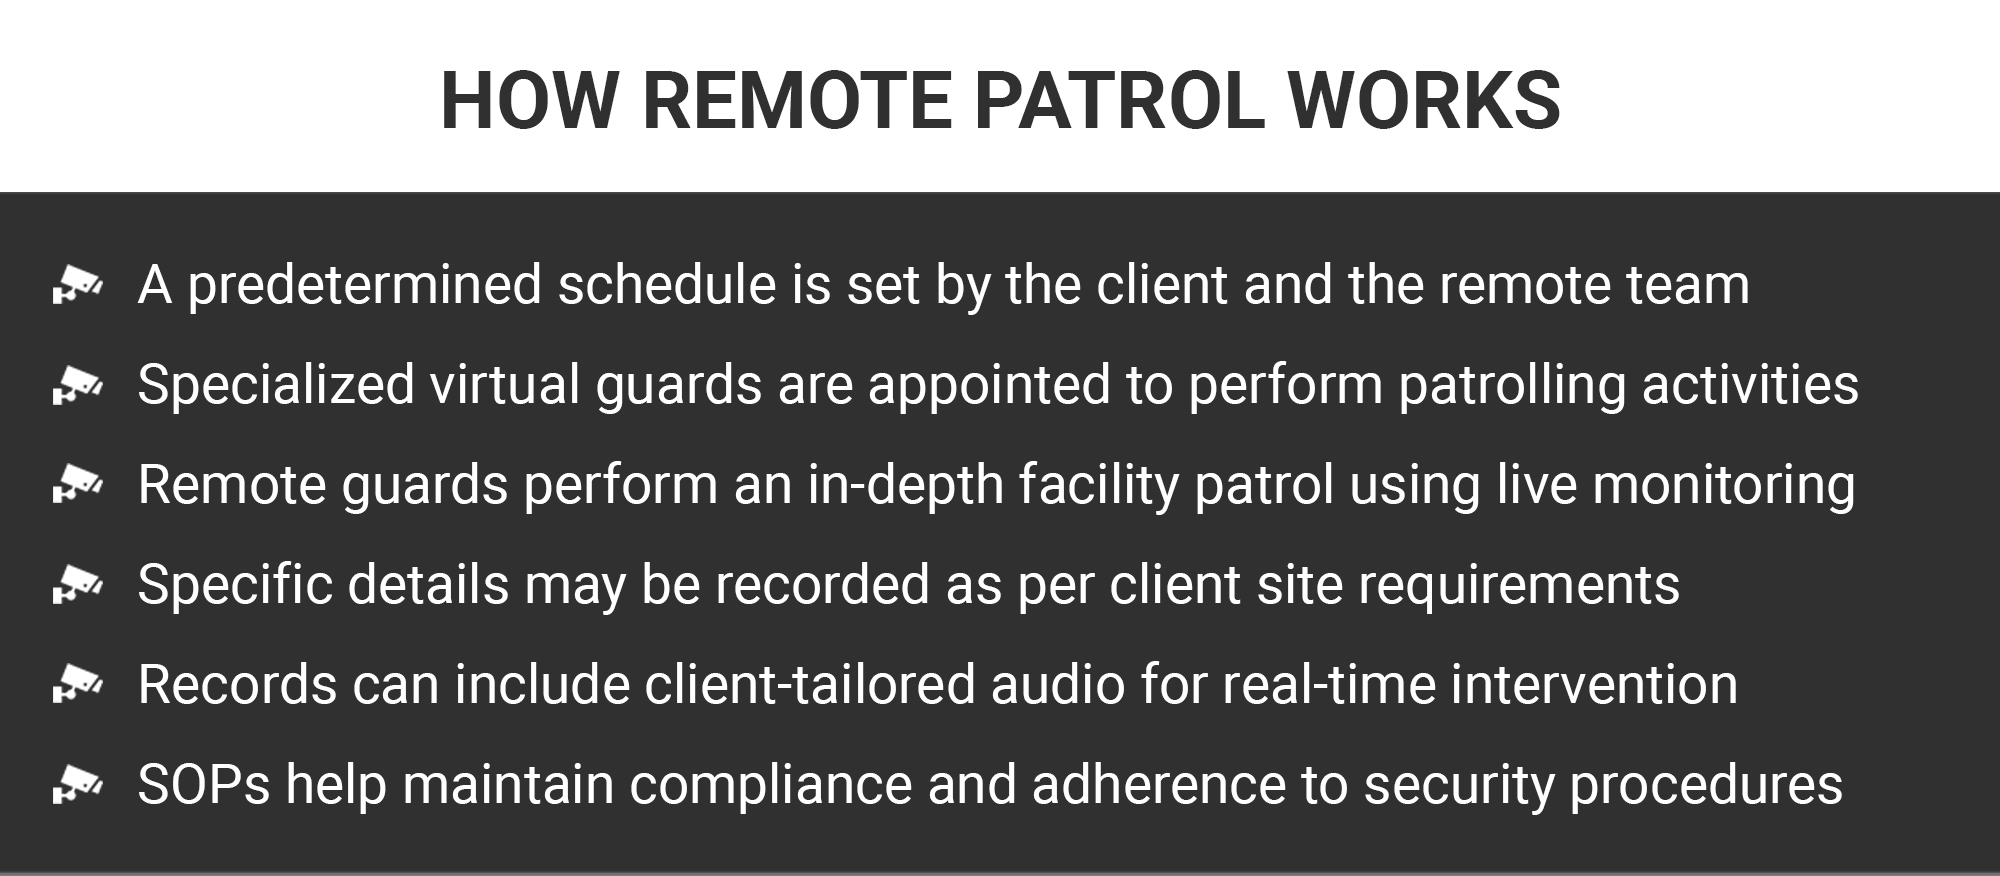 Using cameras to remotely patrol a client's site